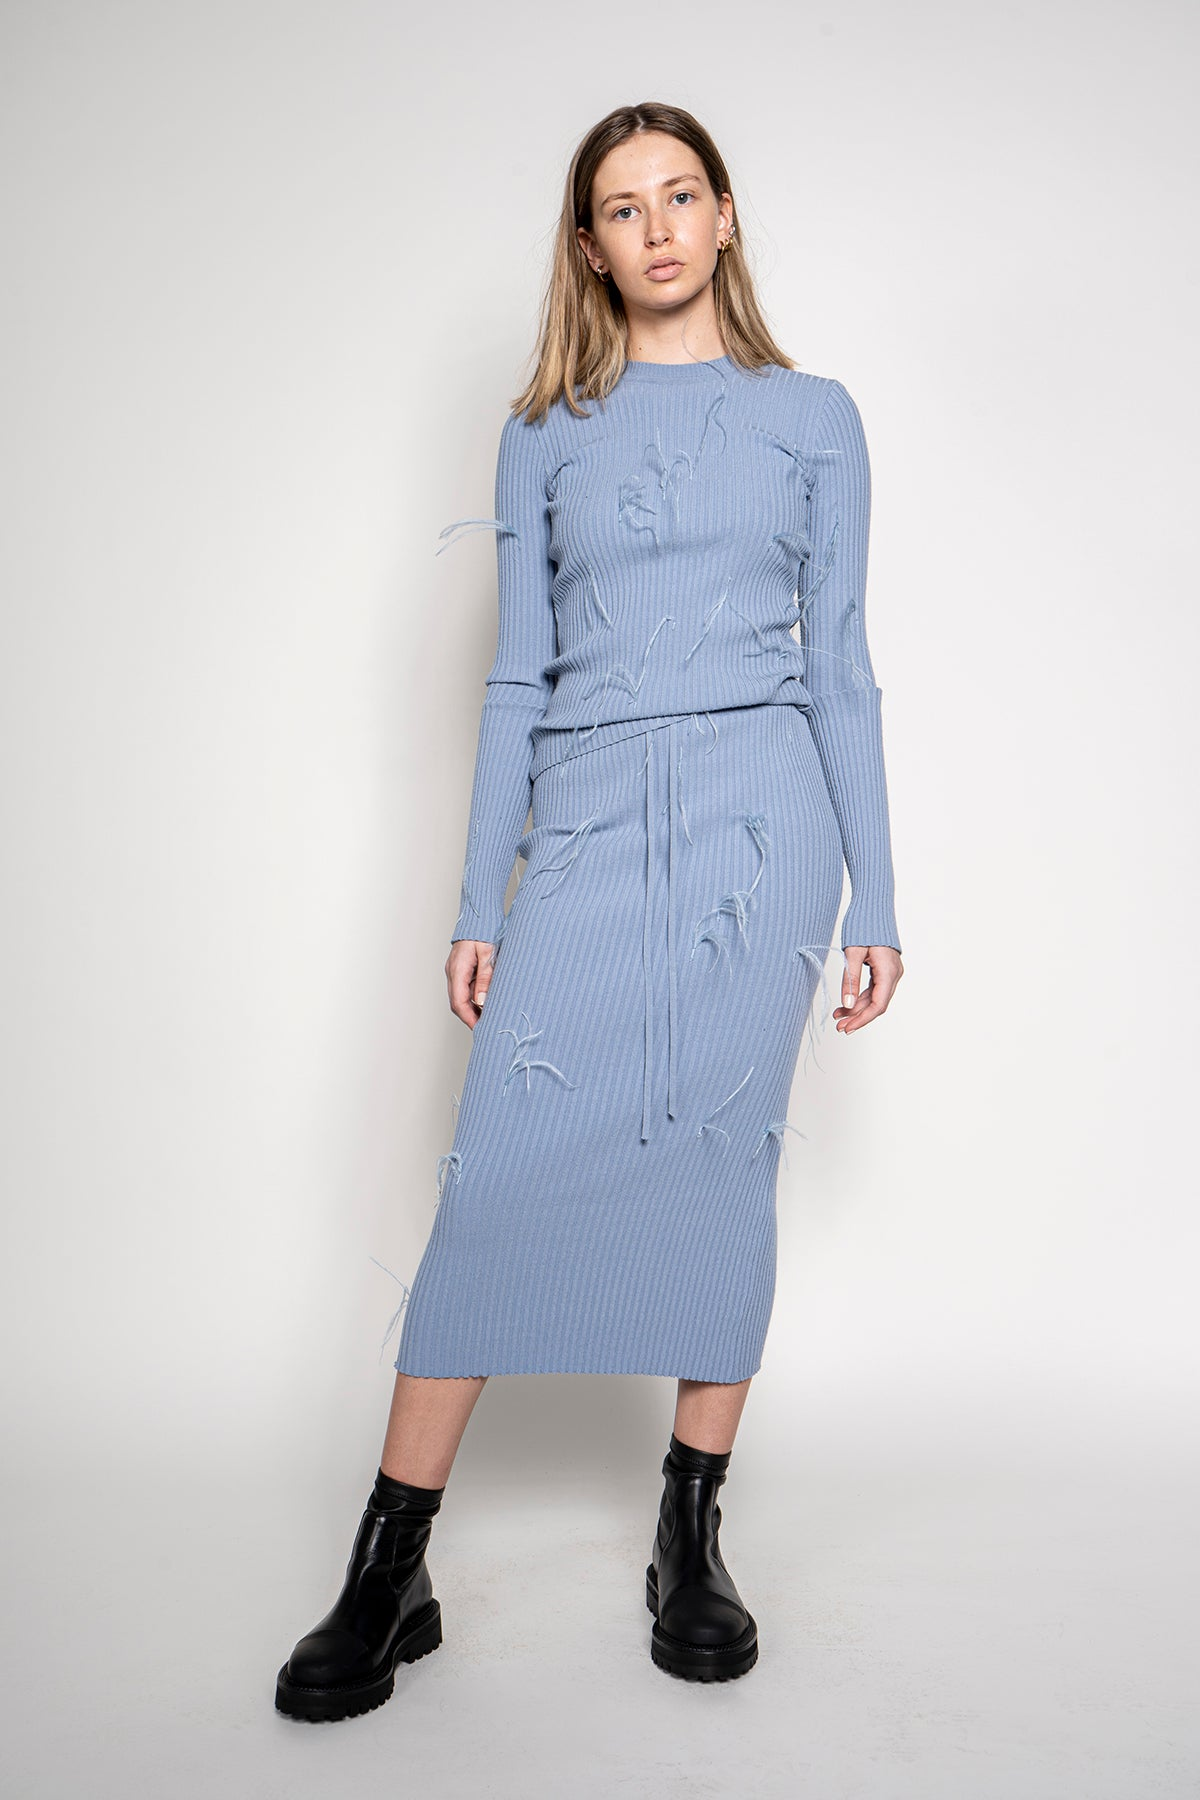 MARQUES ALMEIDA FITTED LONG SKIRT IN BABY BLUE